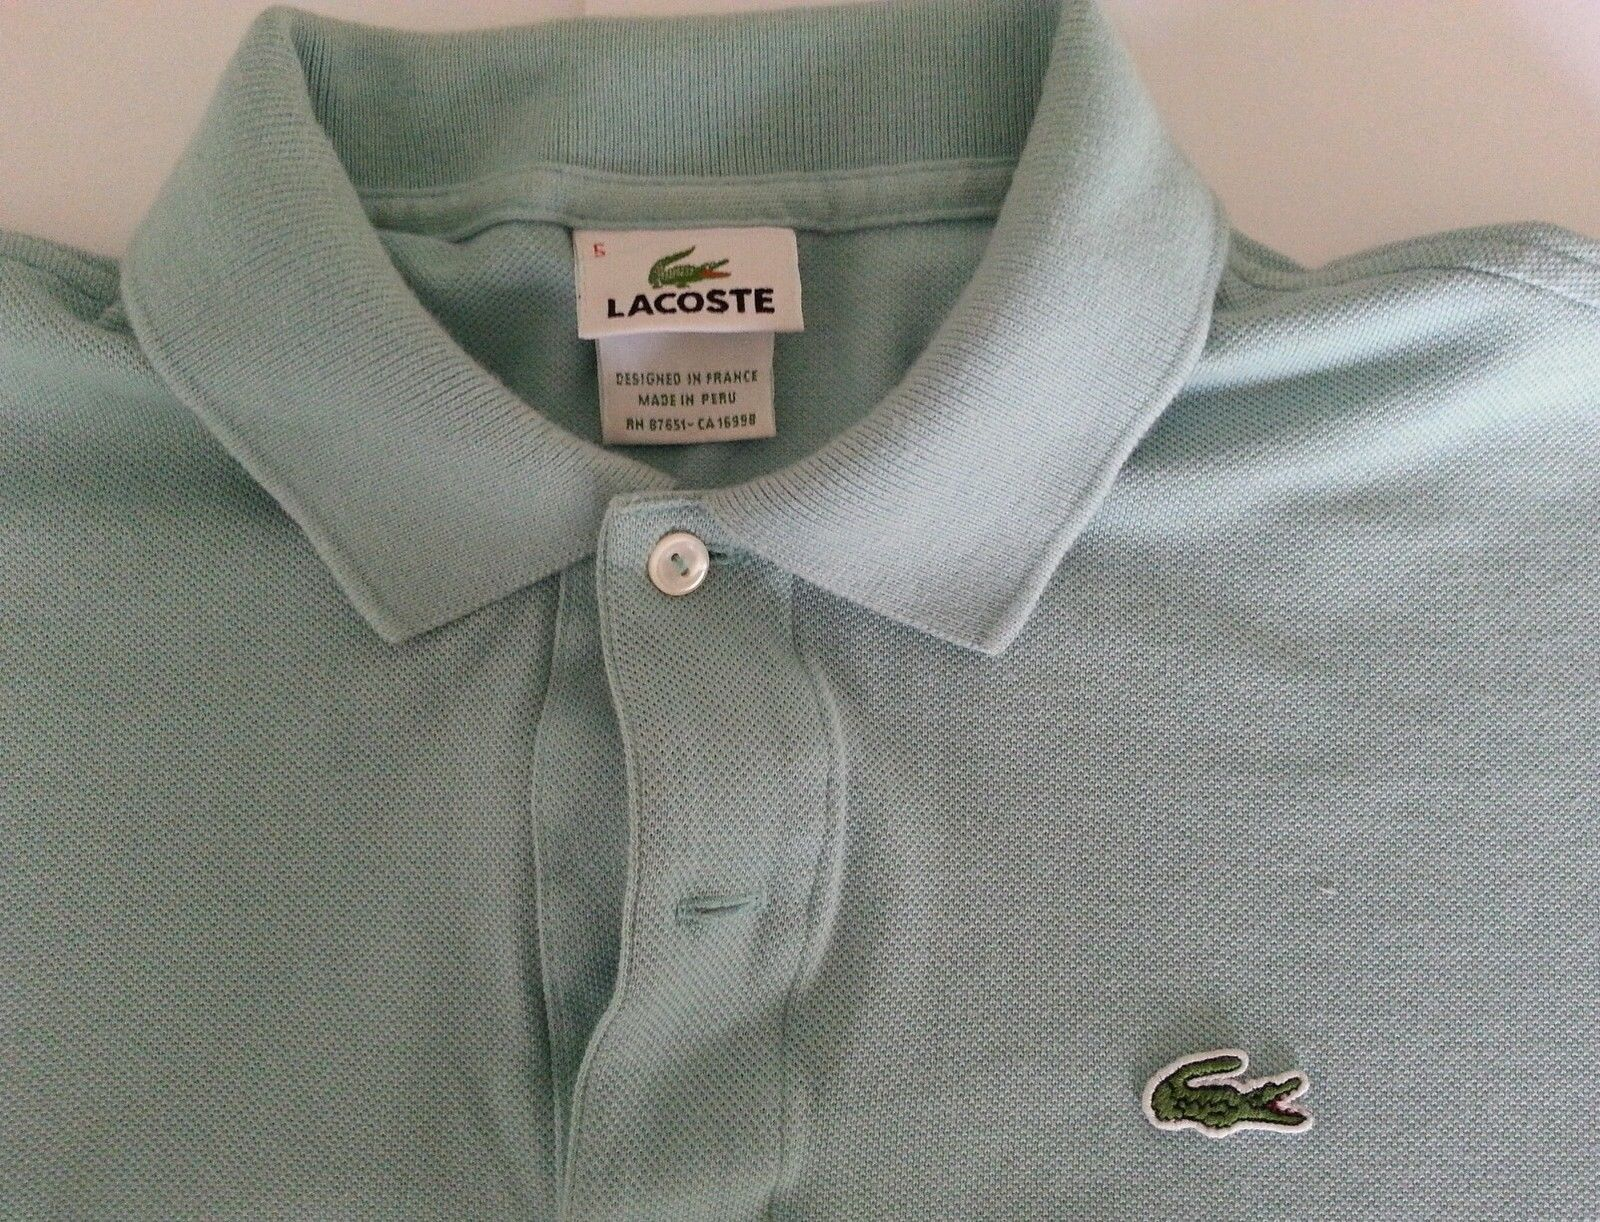 1af2252e3085 Is this a real lacoste polo